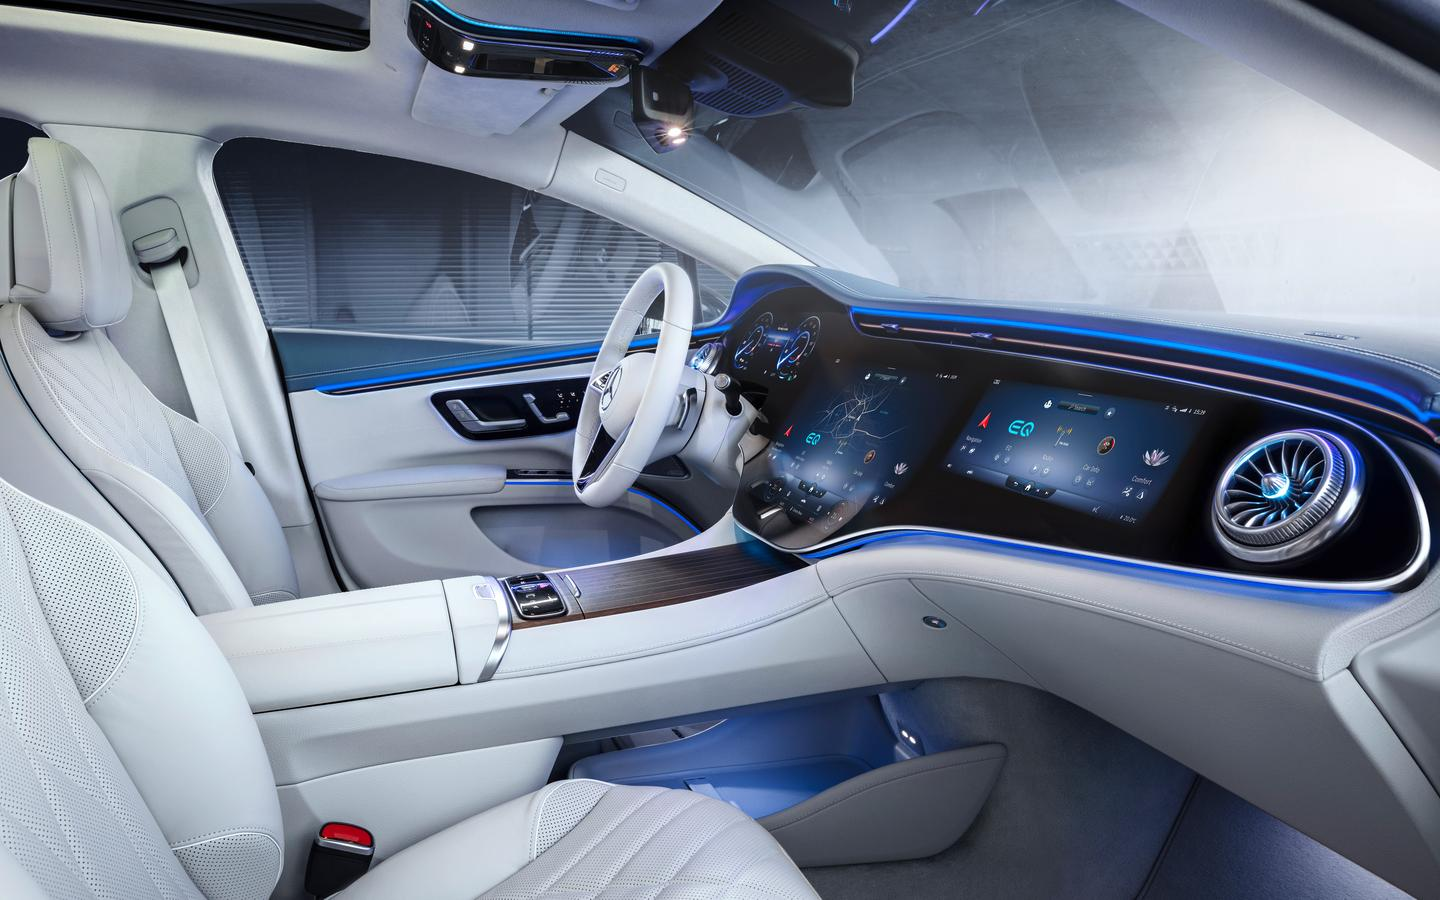 Mercedes highlighted the MBUX Hyperscreen earlier this year at CES, and the EQS becomes the first vehicle to feature it